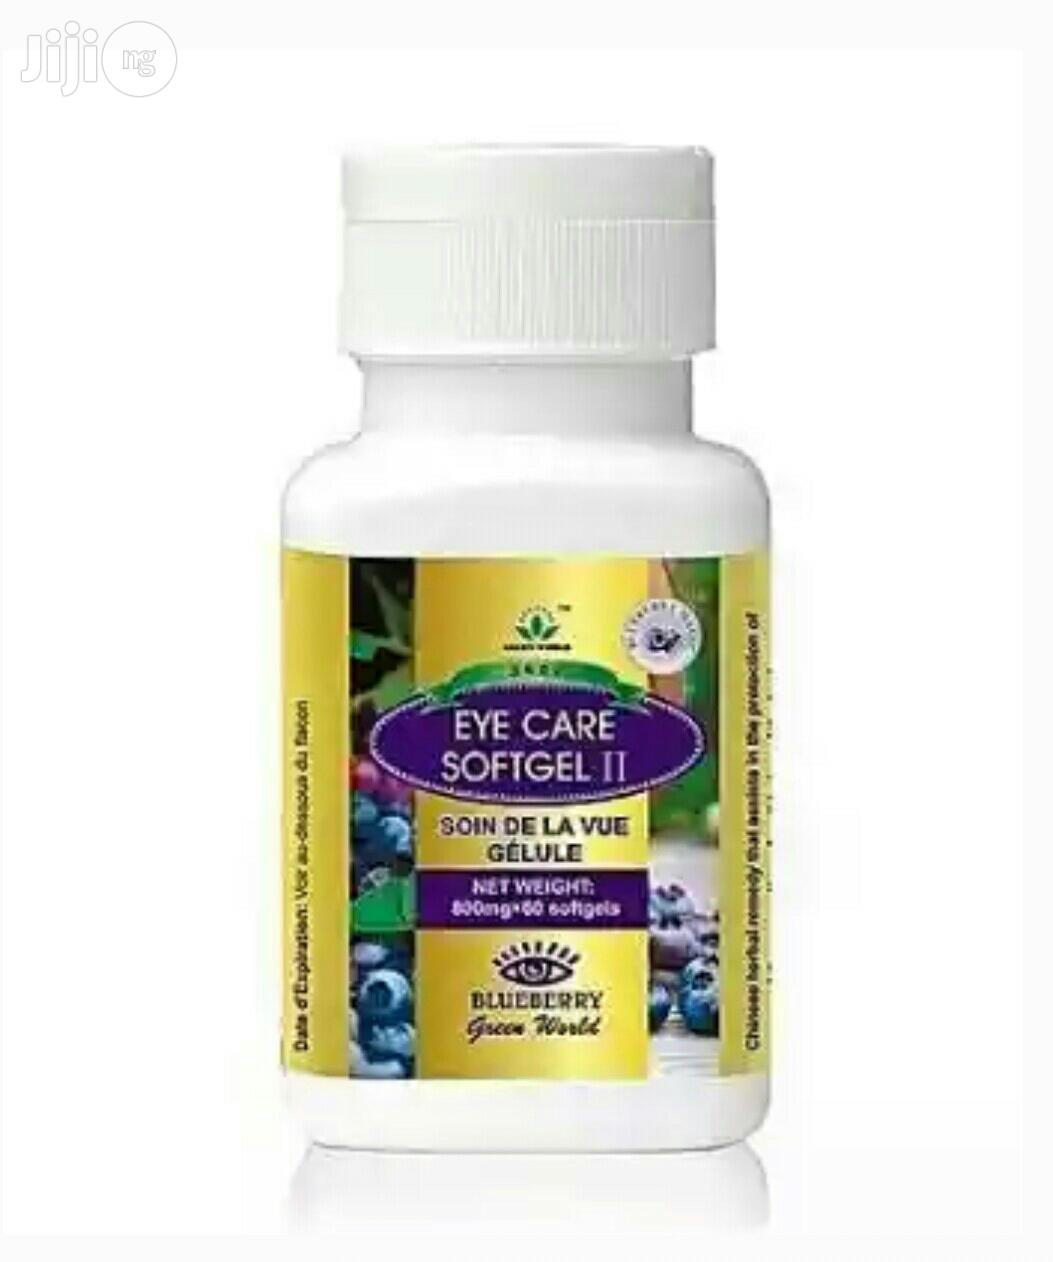 Archive: Greenworld Eye Care Softgel - Say Goodbye to Glasses in Alimosho -  Vitamins & Supplements, Emmanuella John | Jiji.ng for sale in Alimosho |  Buy Vitamins & Supplements from Emmanuella John